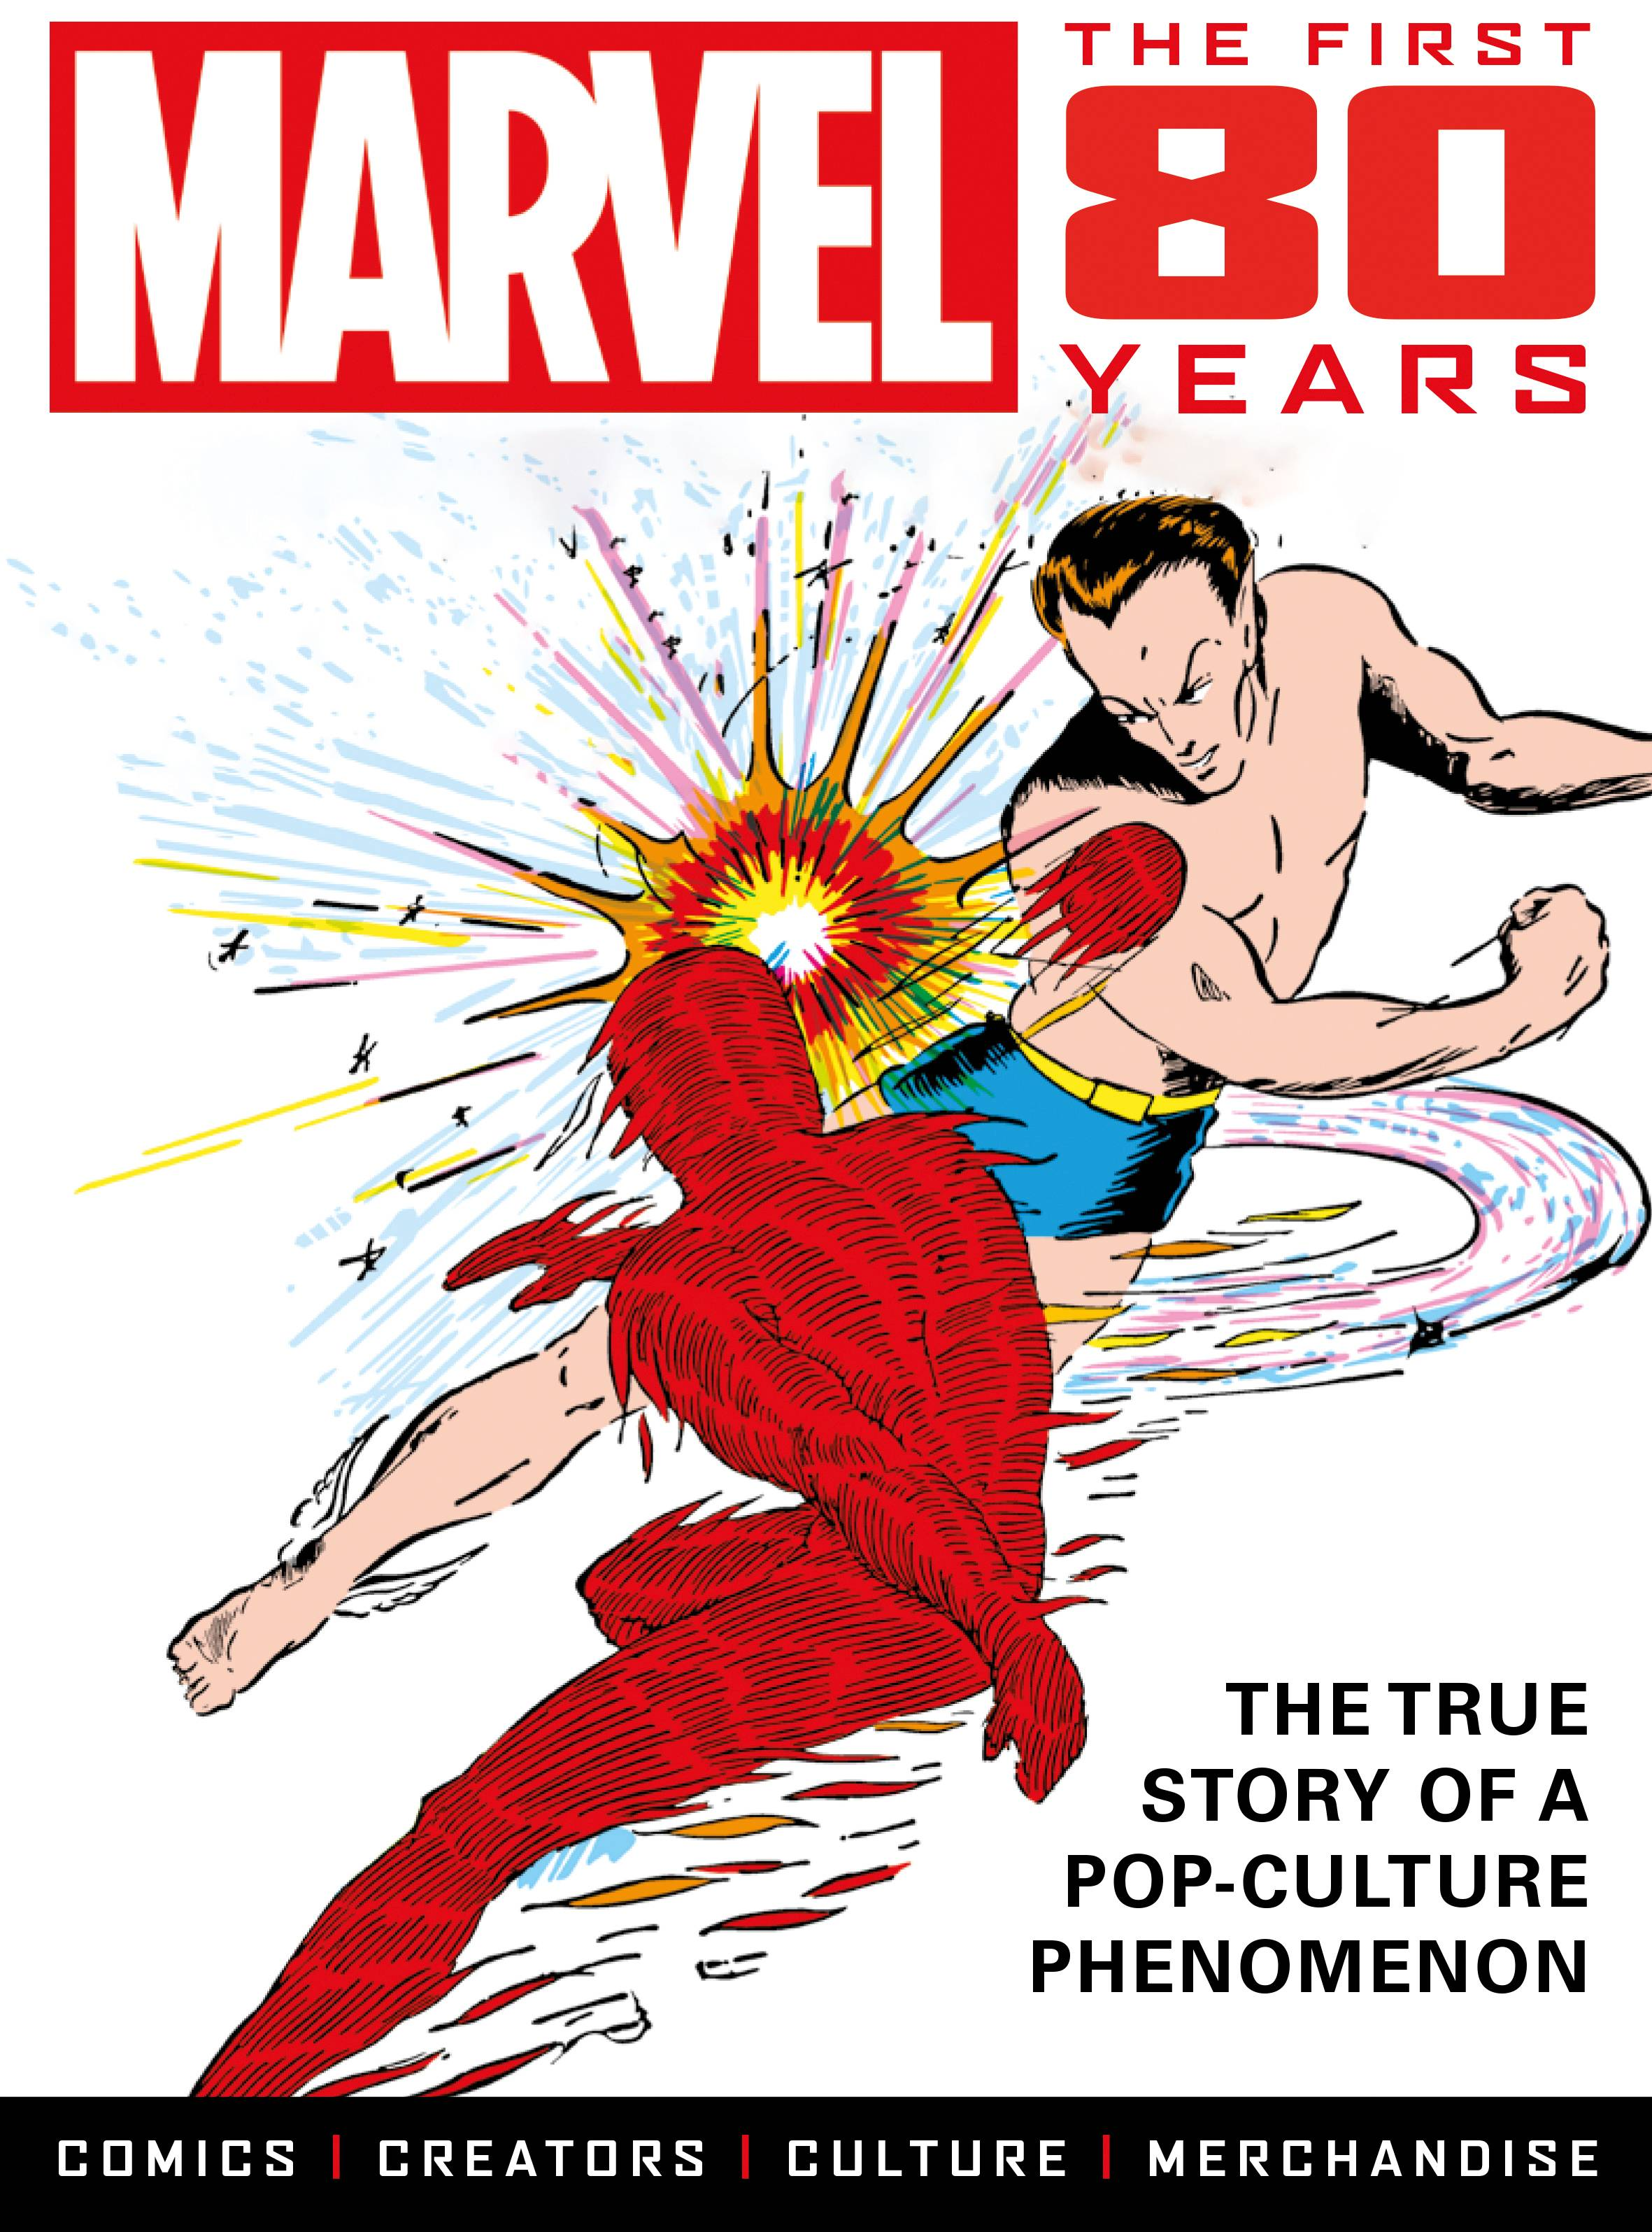 MARVEL COMICS FIRST 80 YEARS TP